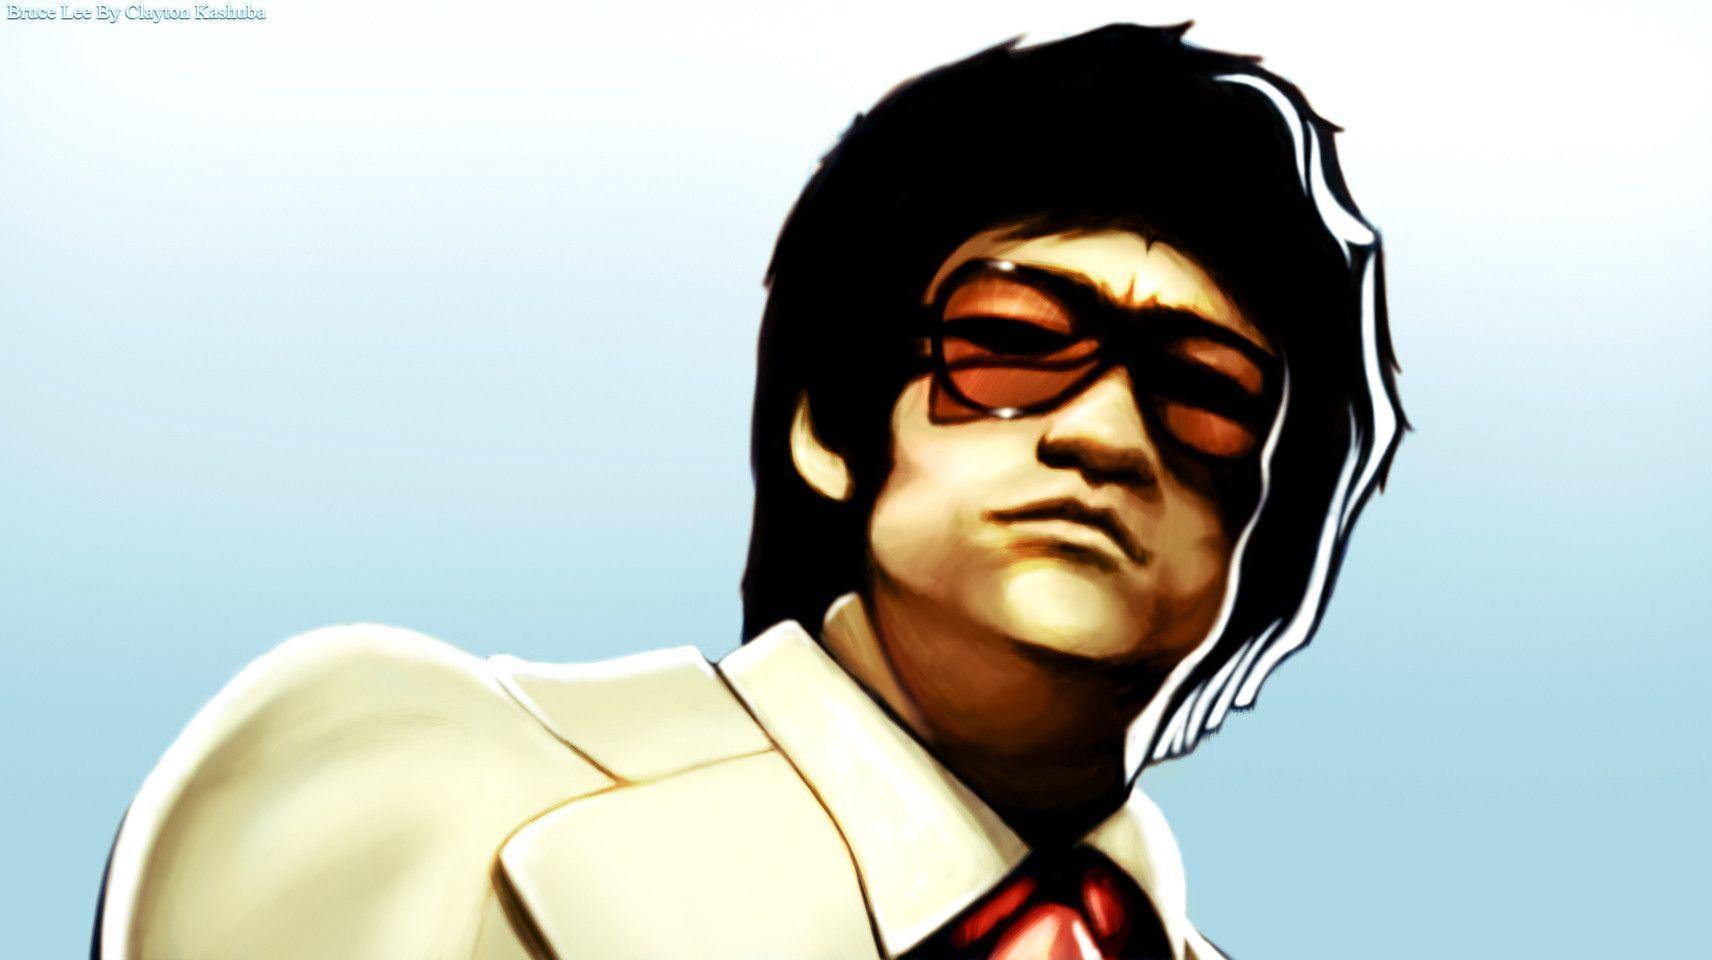 Bruce Lee Wallpapers | HD Wallpapers Base